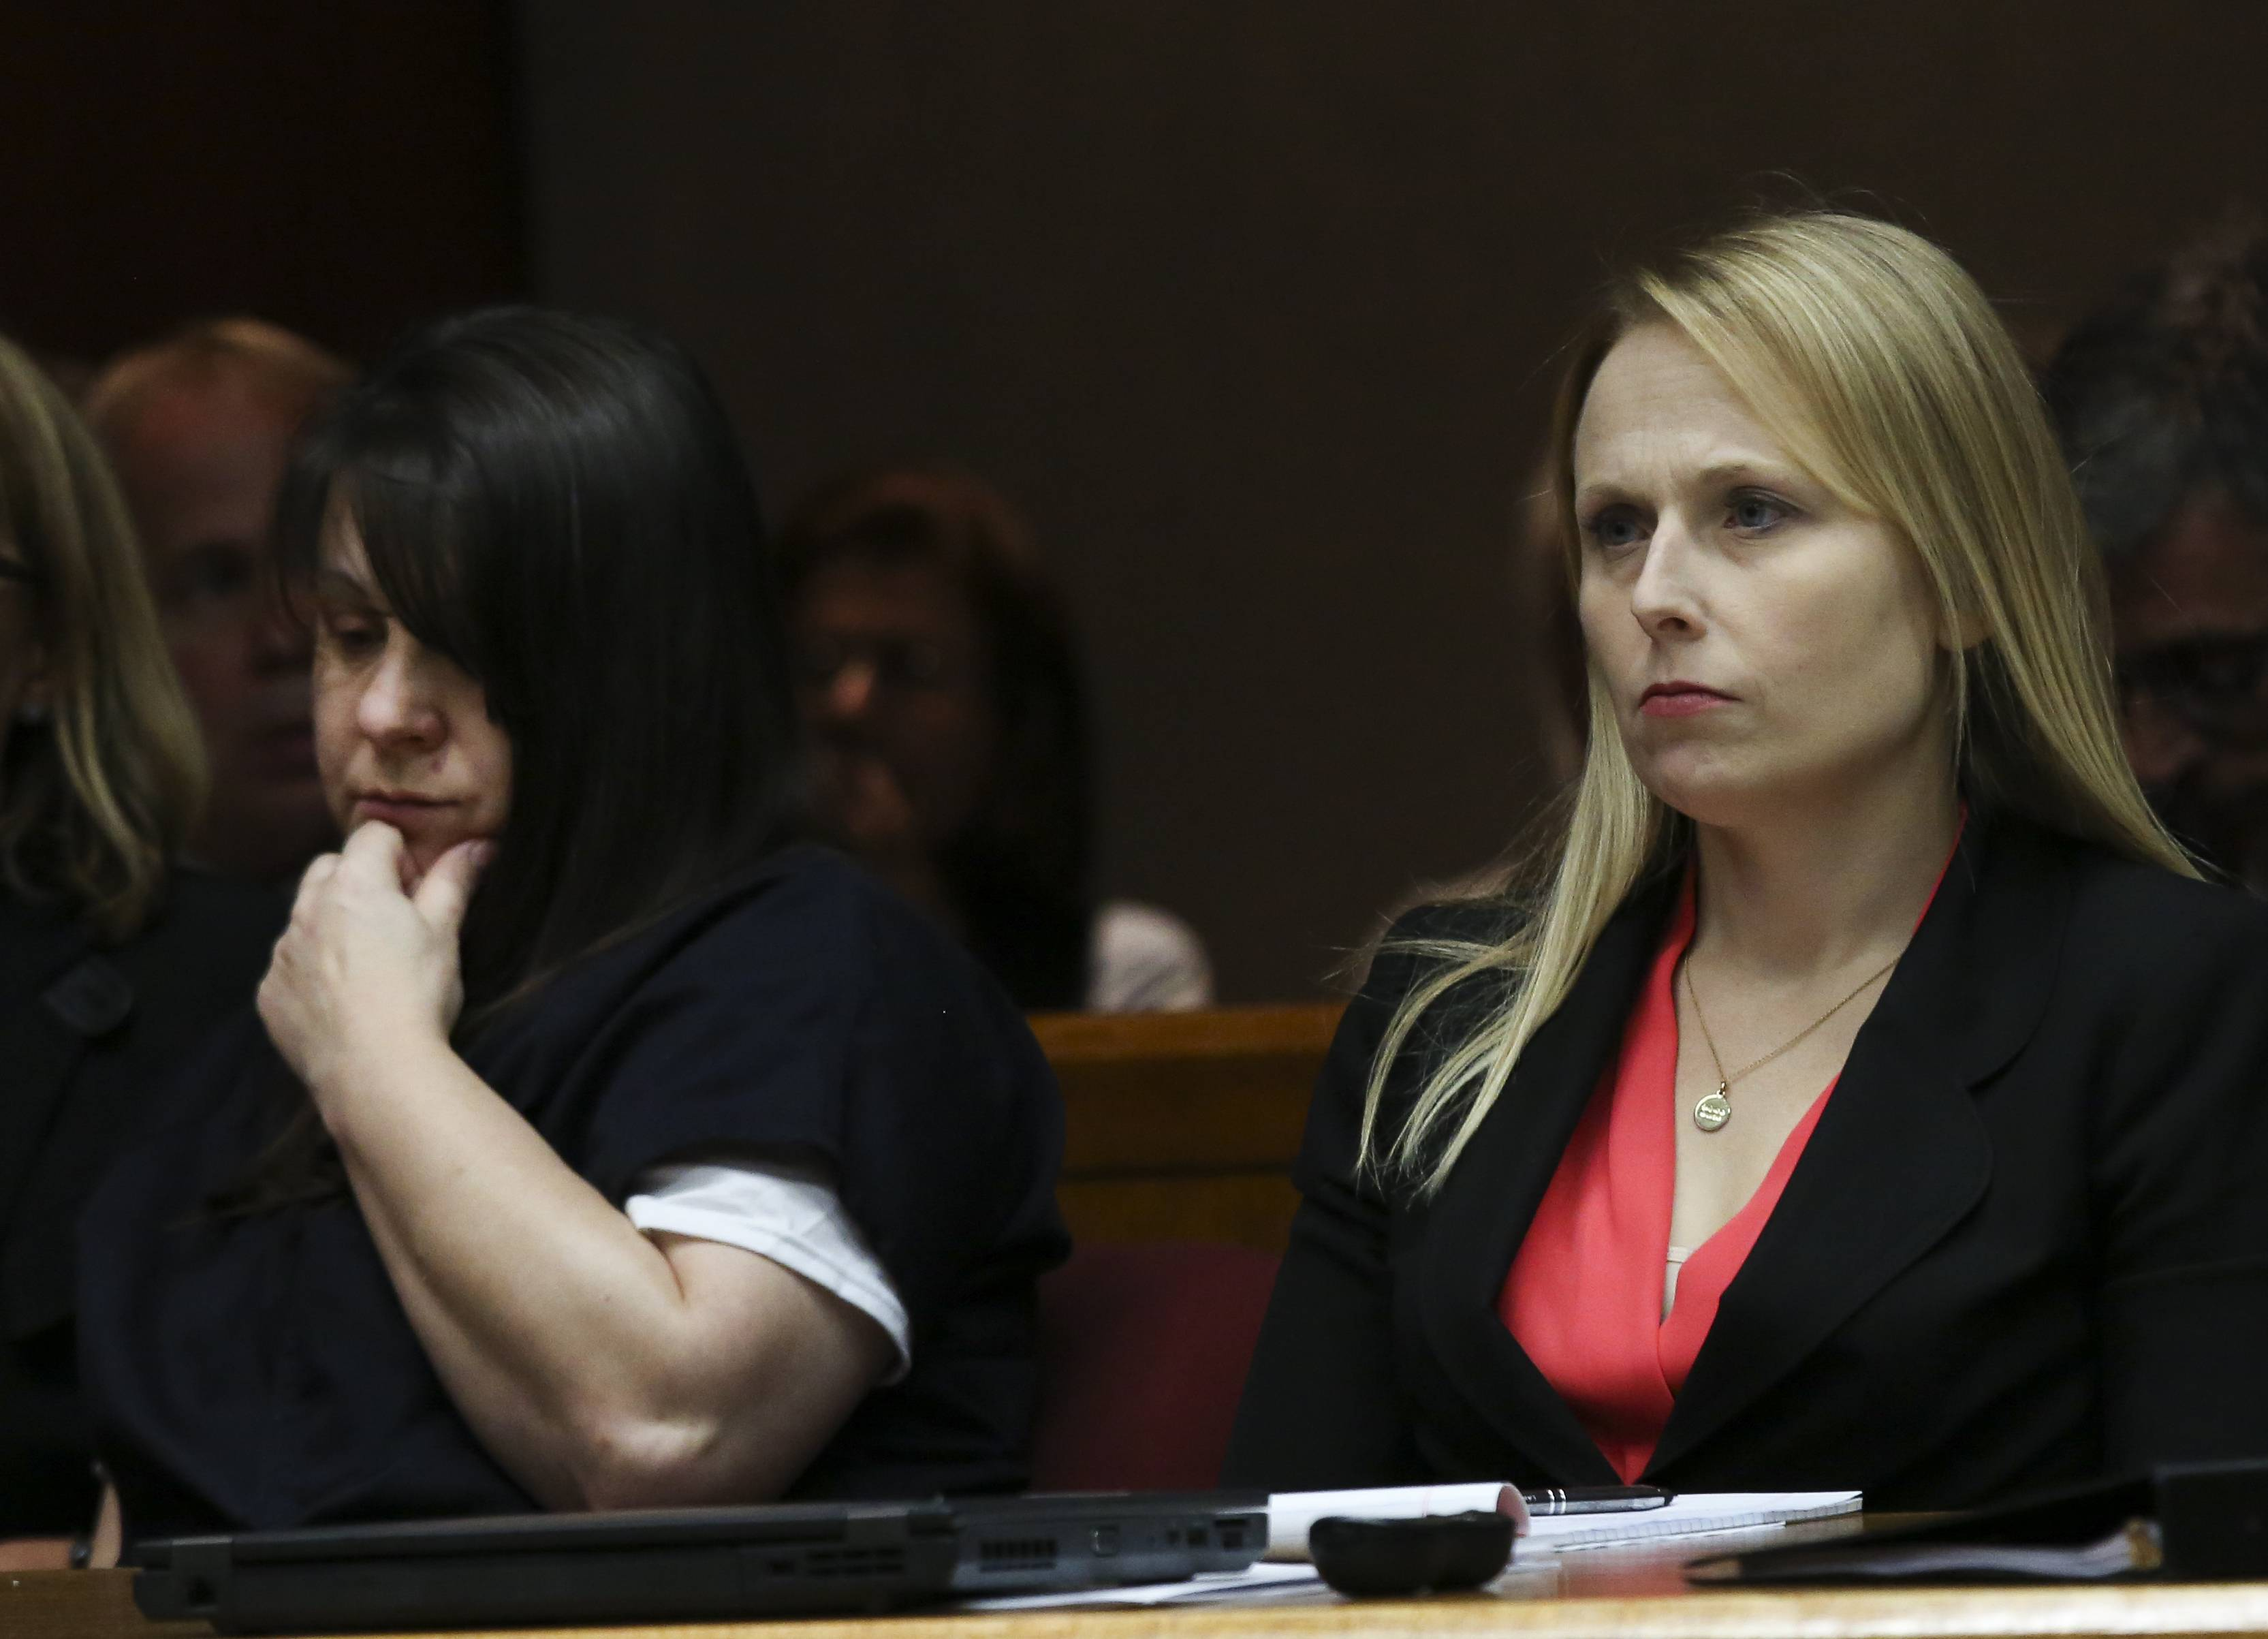 Elzbieta Plackowska, left, shown with Assistant Public Defender Kristen Nevdal at her September trial, is expected to be sentenced Dec. 15 after being convicted of 10 counts of first-degree murder and two counts of animal cruelty.